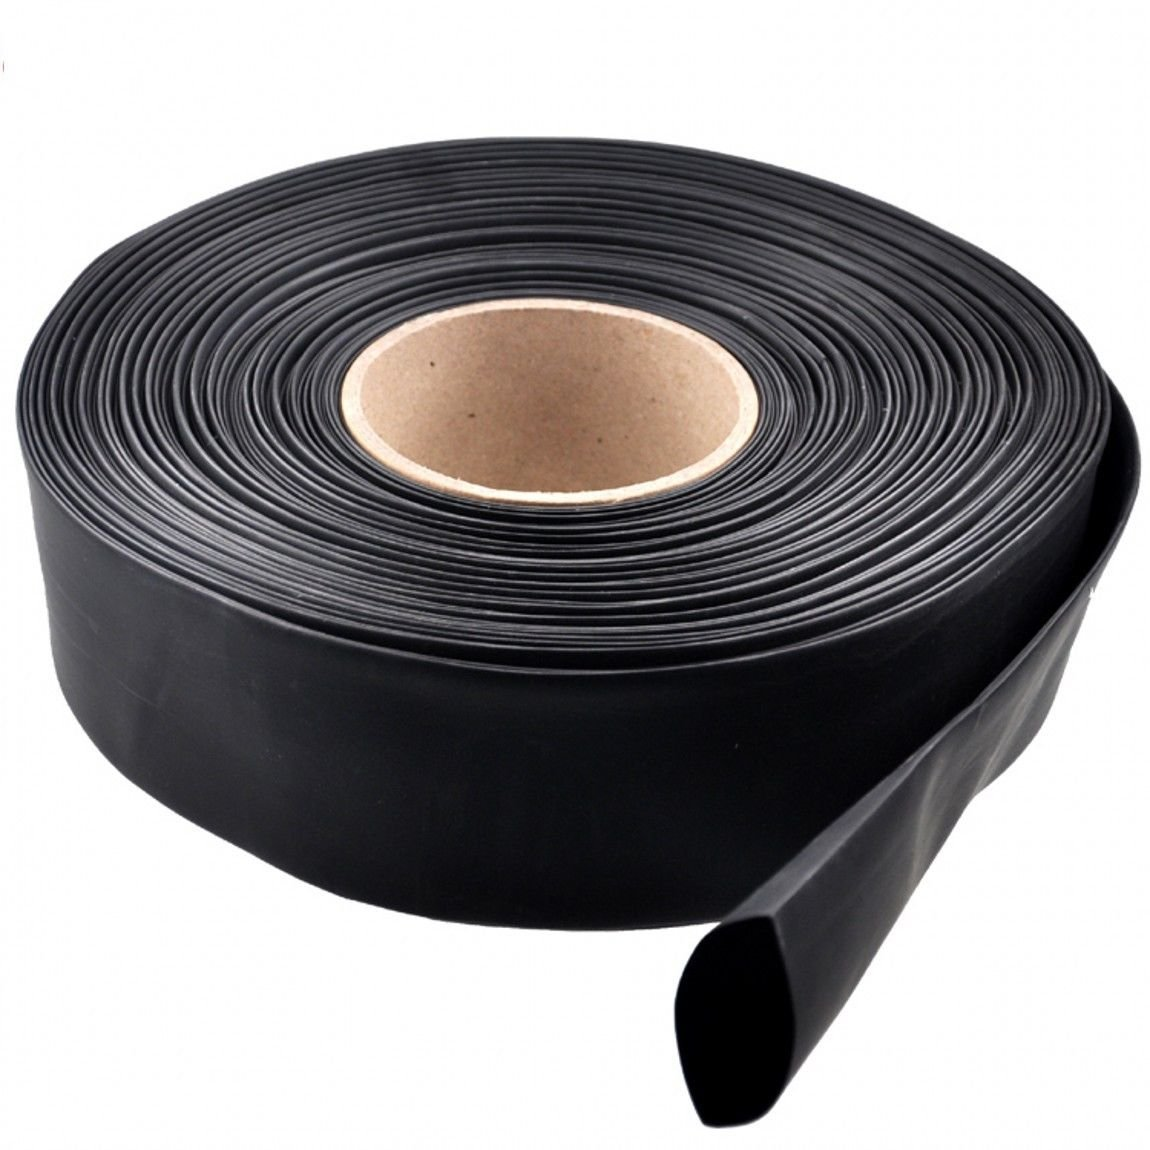 FEVERWORK 5m Black 2:1 Heat Shrink Tubing Tube Sleeve Wrap Wire Cable 15//20//25//30//35//40mm 20mm